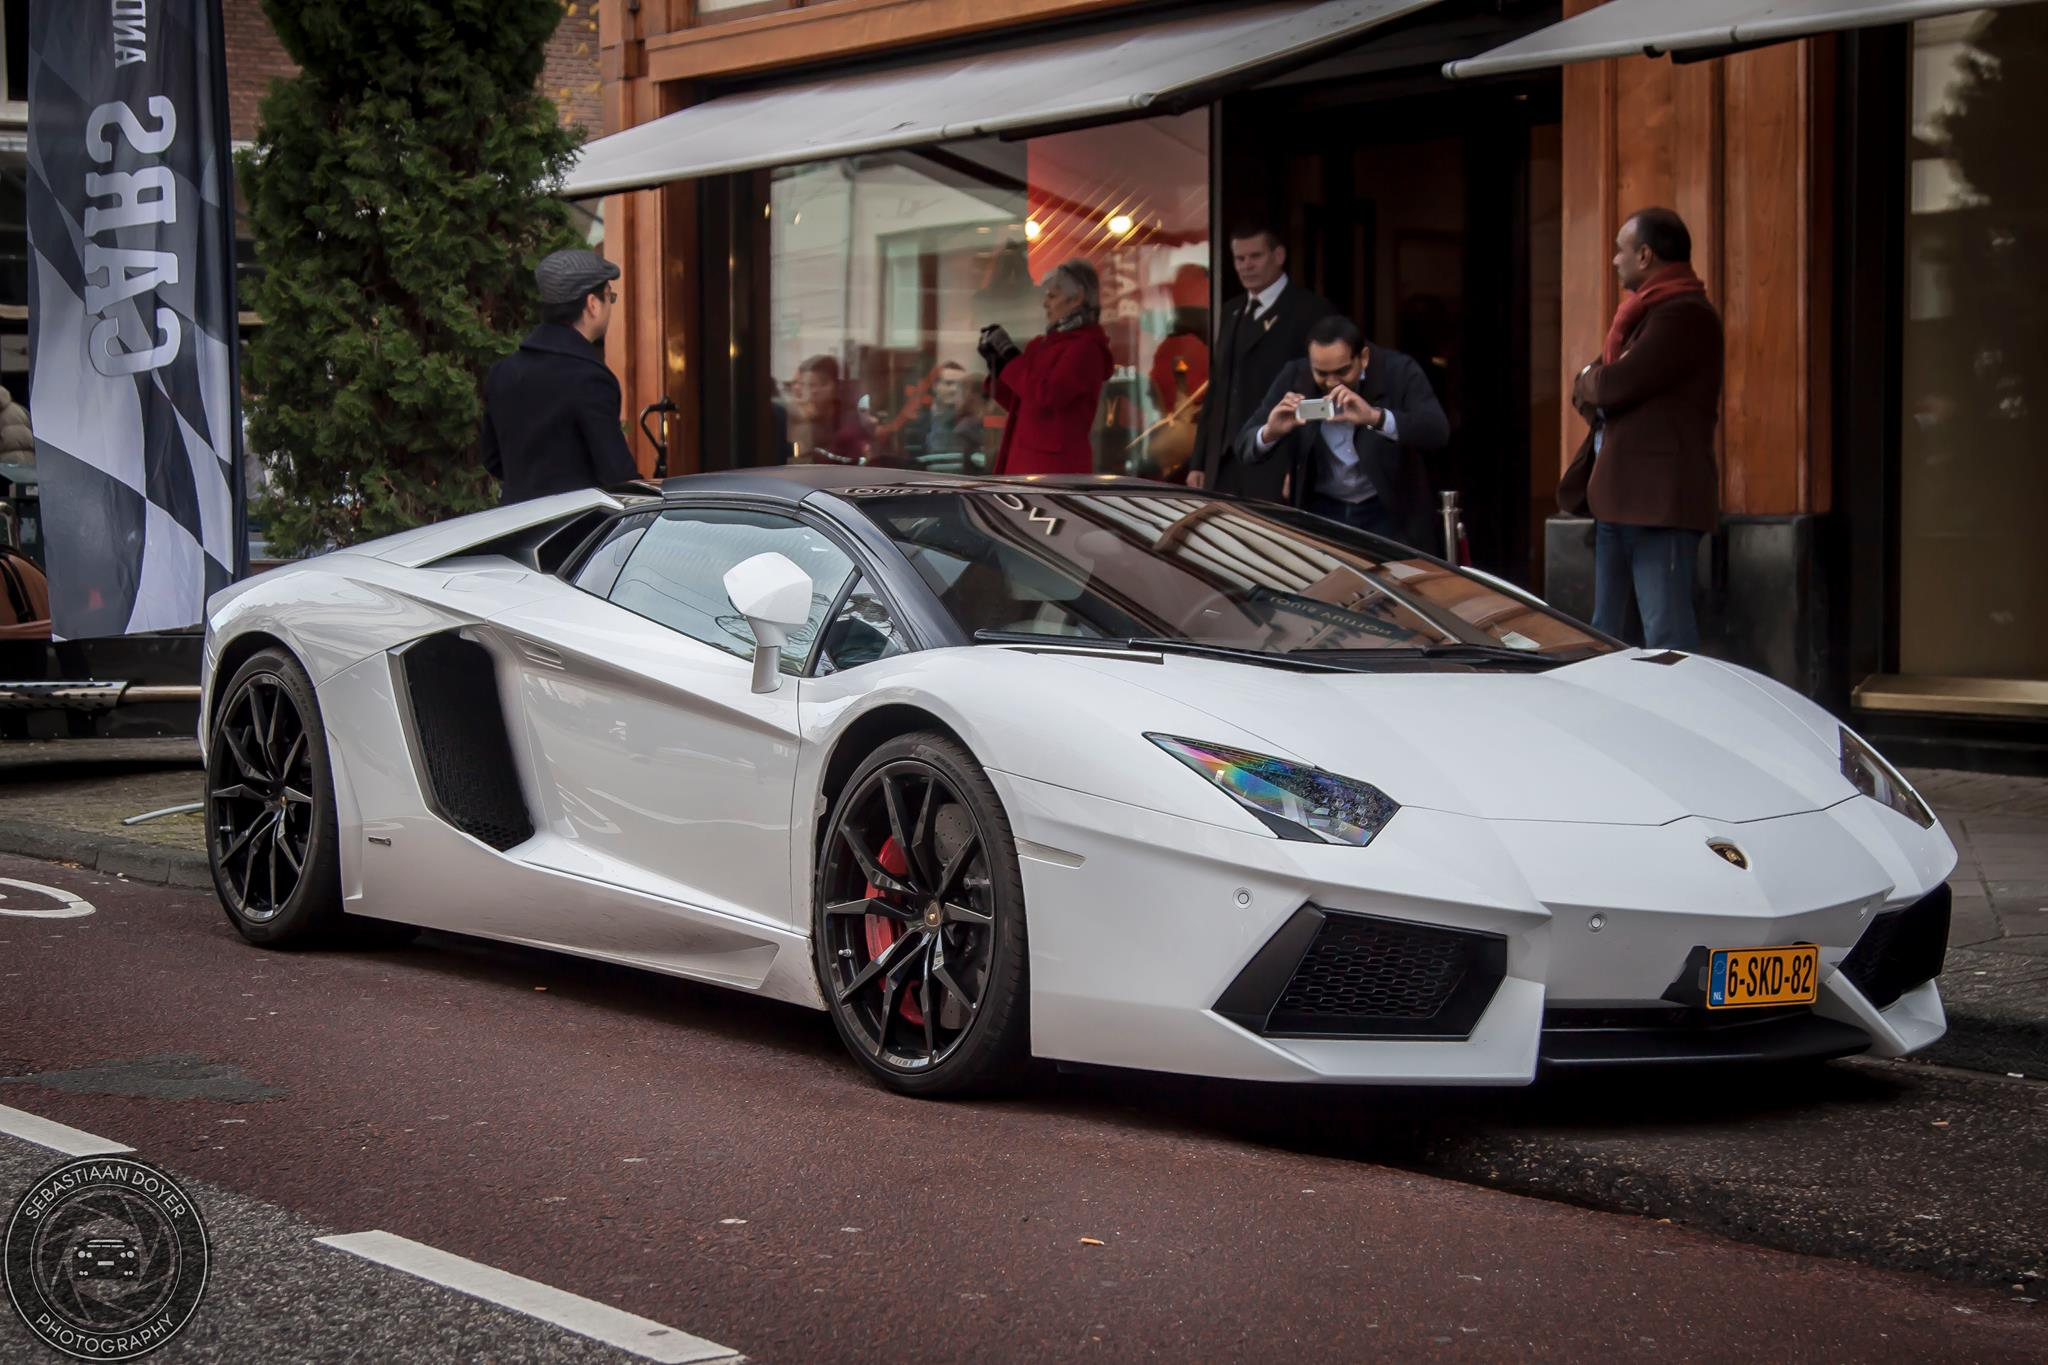 lamborghini aventador roadster london with Cars And Business Pc Hooftstraat Amsterdam on Wallpaper Hd 1080p besides Watch together with Watch furthermore Matte Black Lamborghini Aventador Sv additionally Watch.